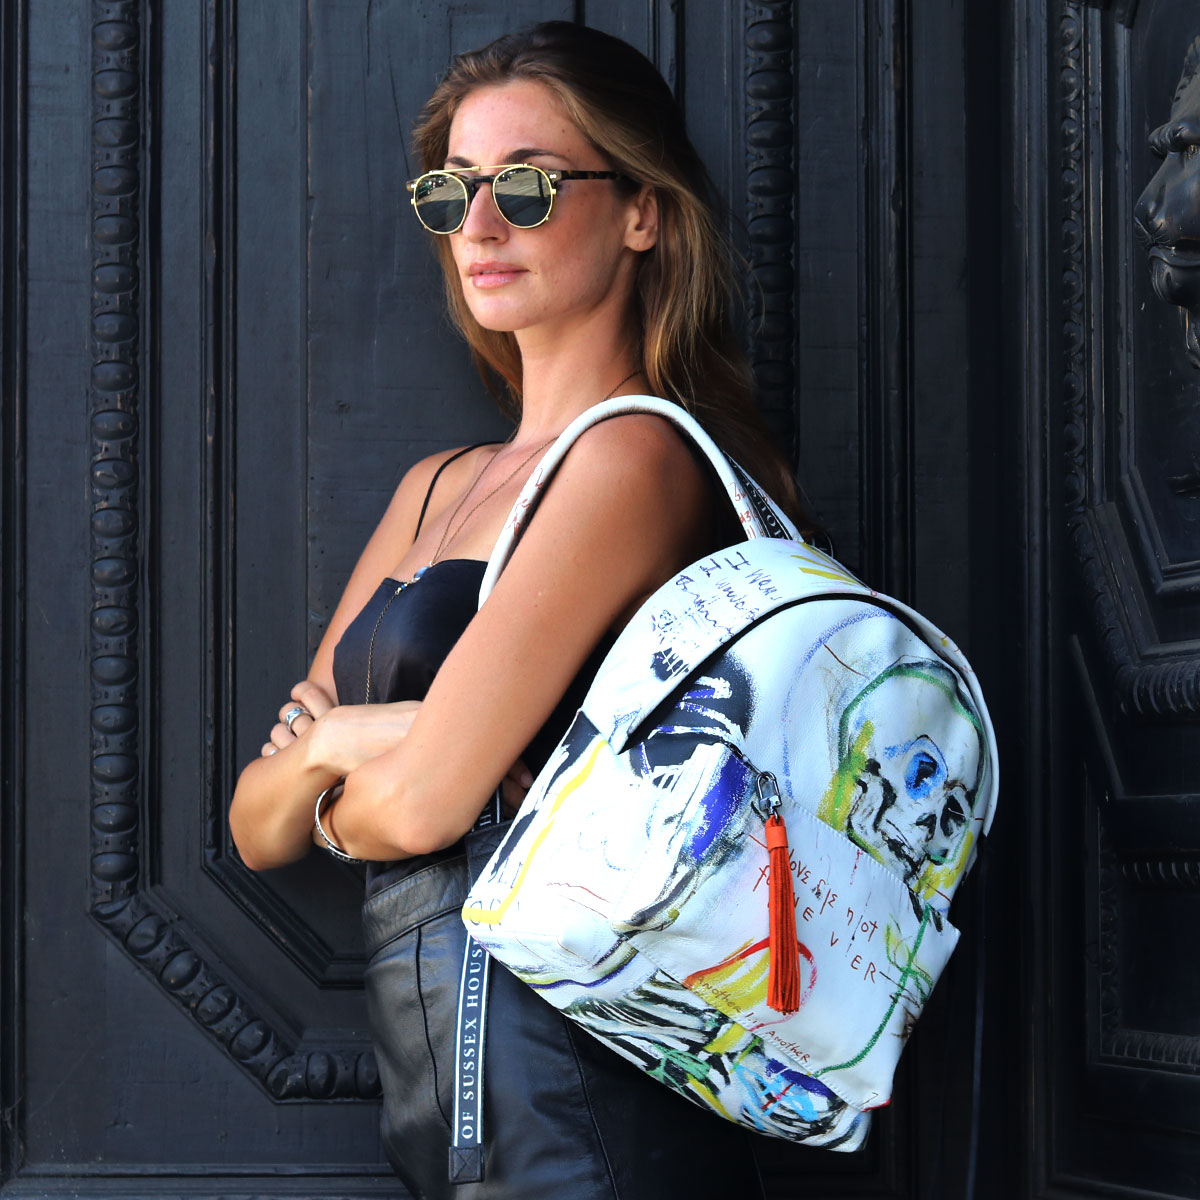 House of Sussex Girl with Backpack